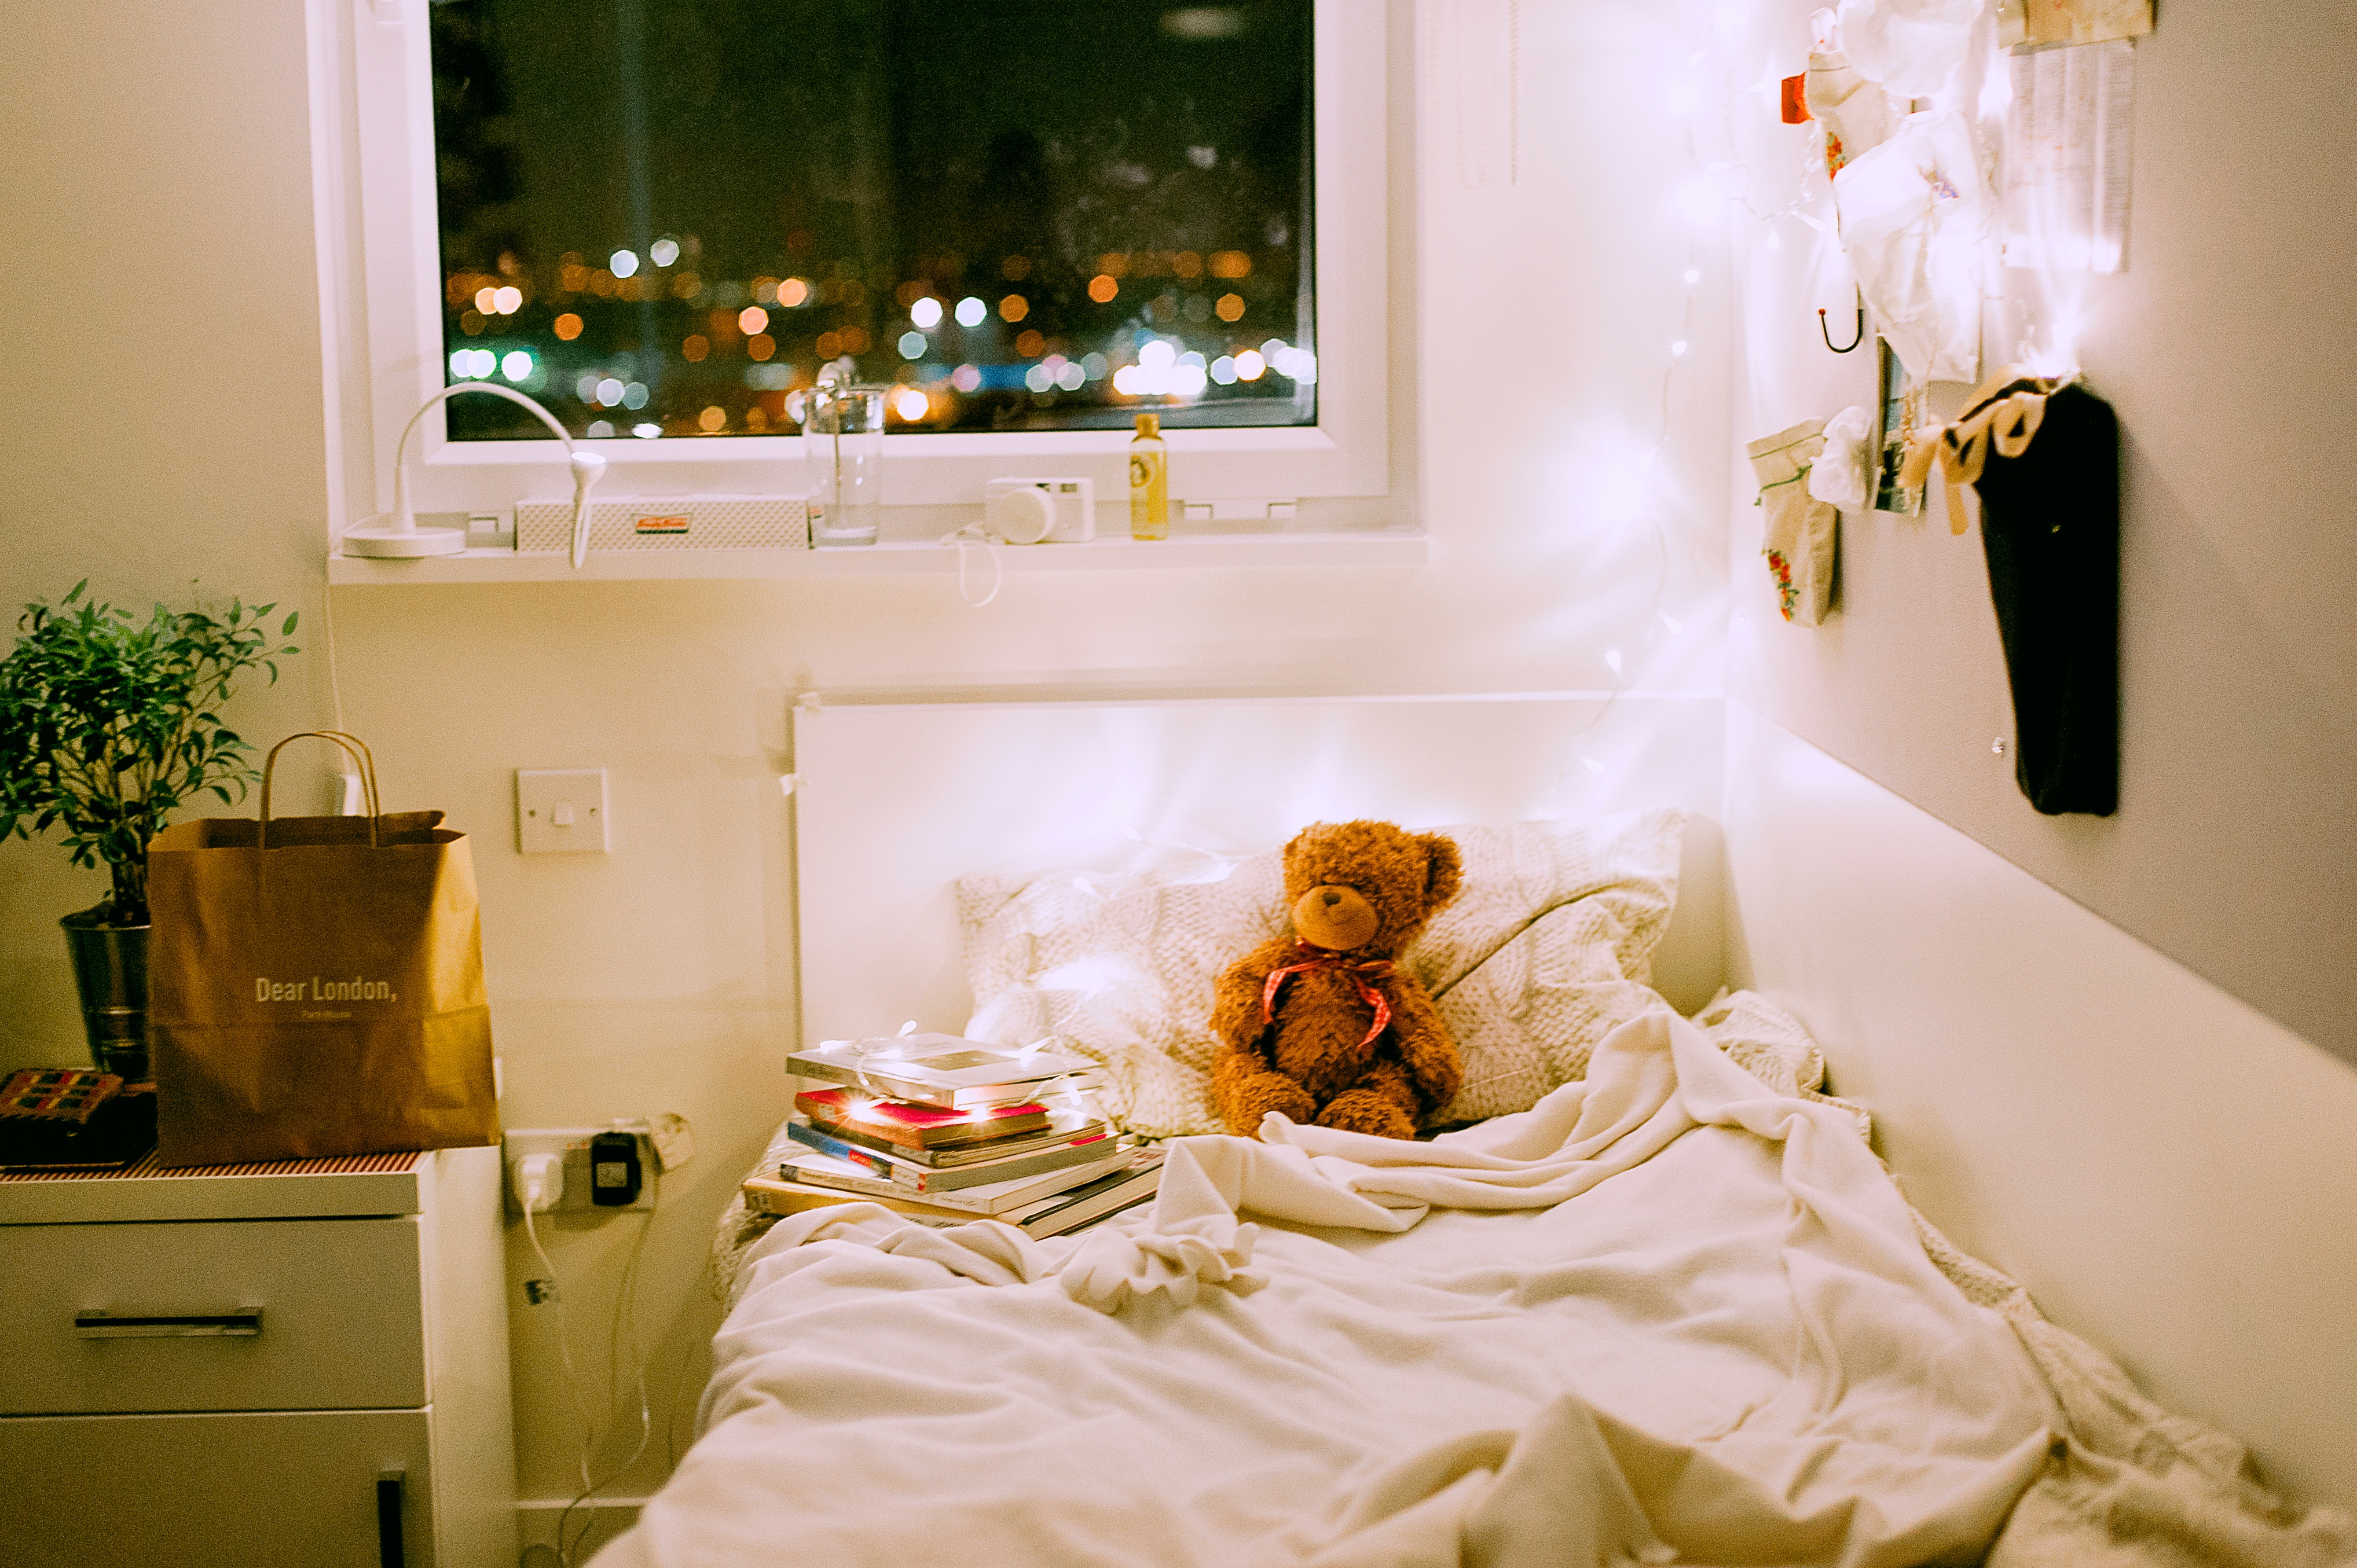 A college or university dorm room with a bed and a teddy bear on it